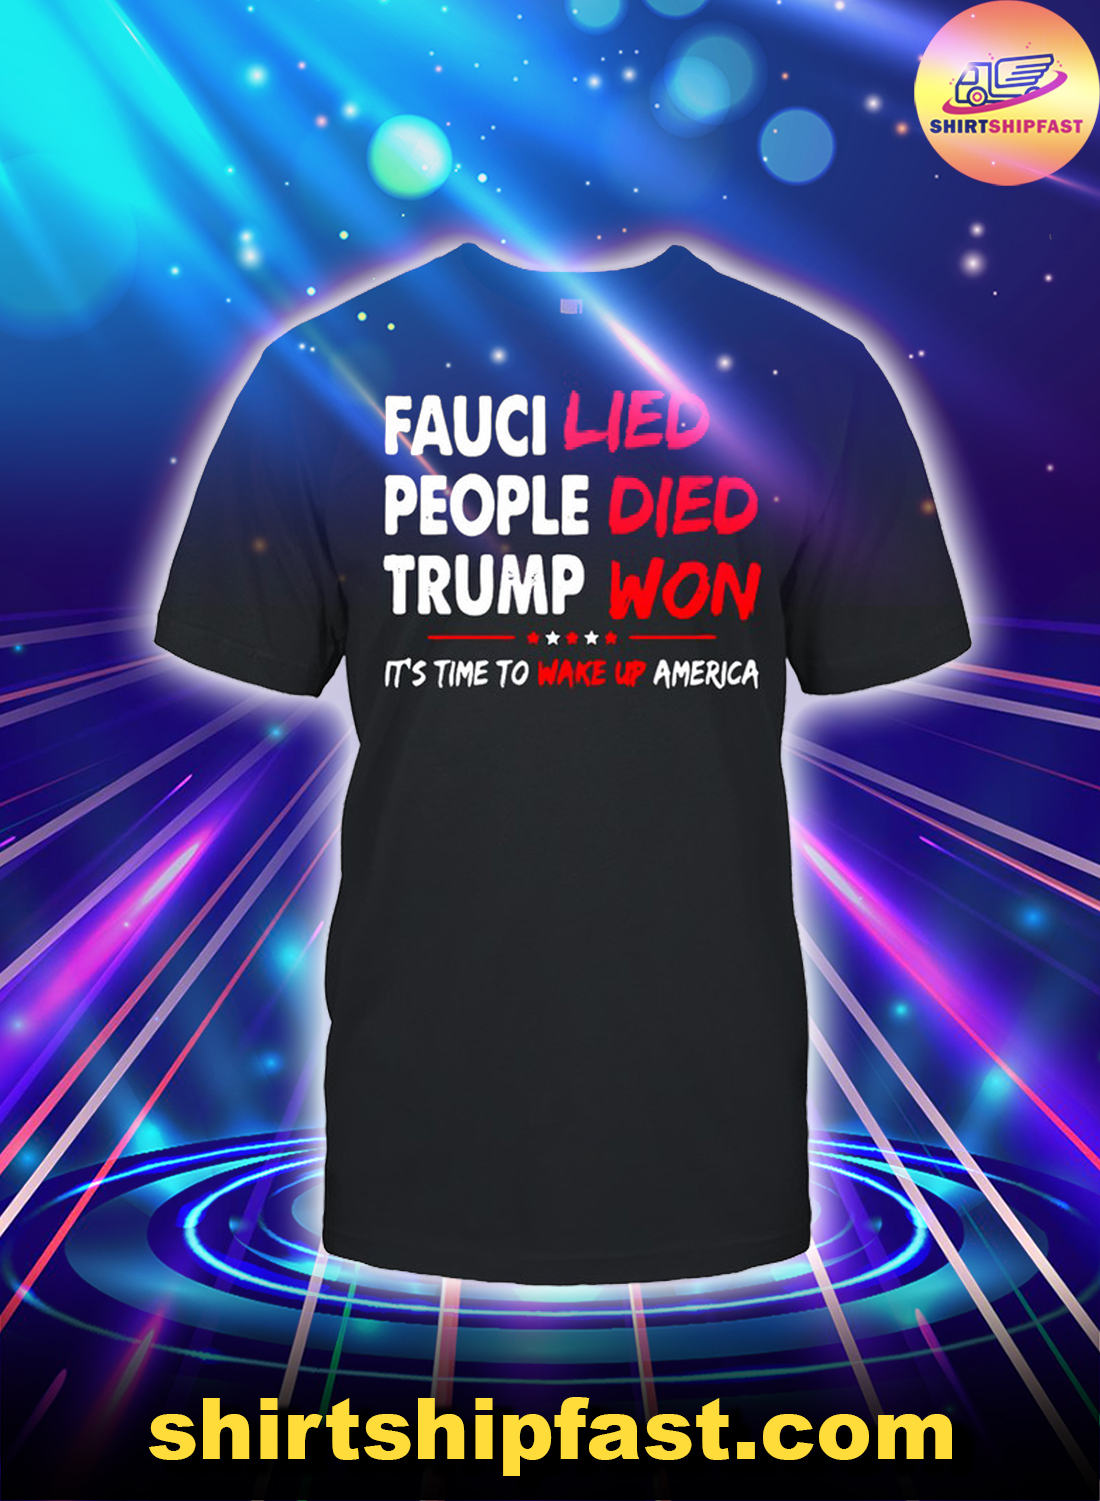 Fauci lied people died Trump won It's time to wake up America shirt